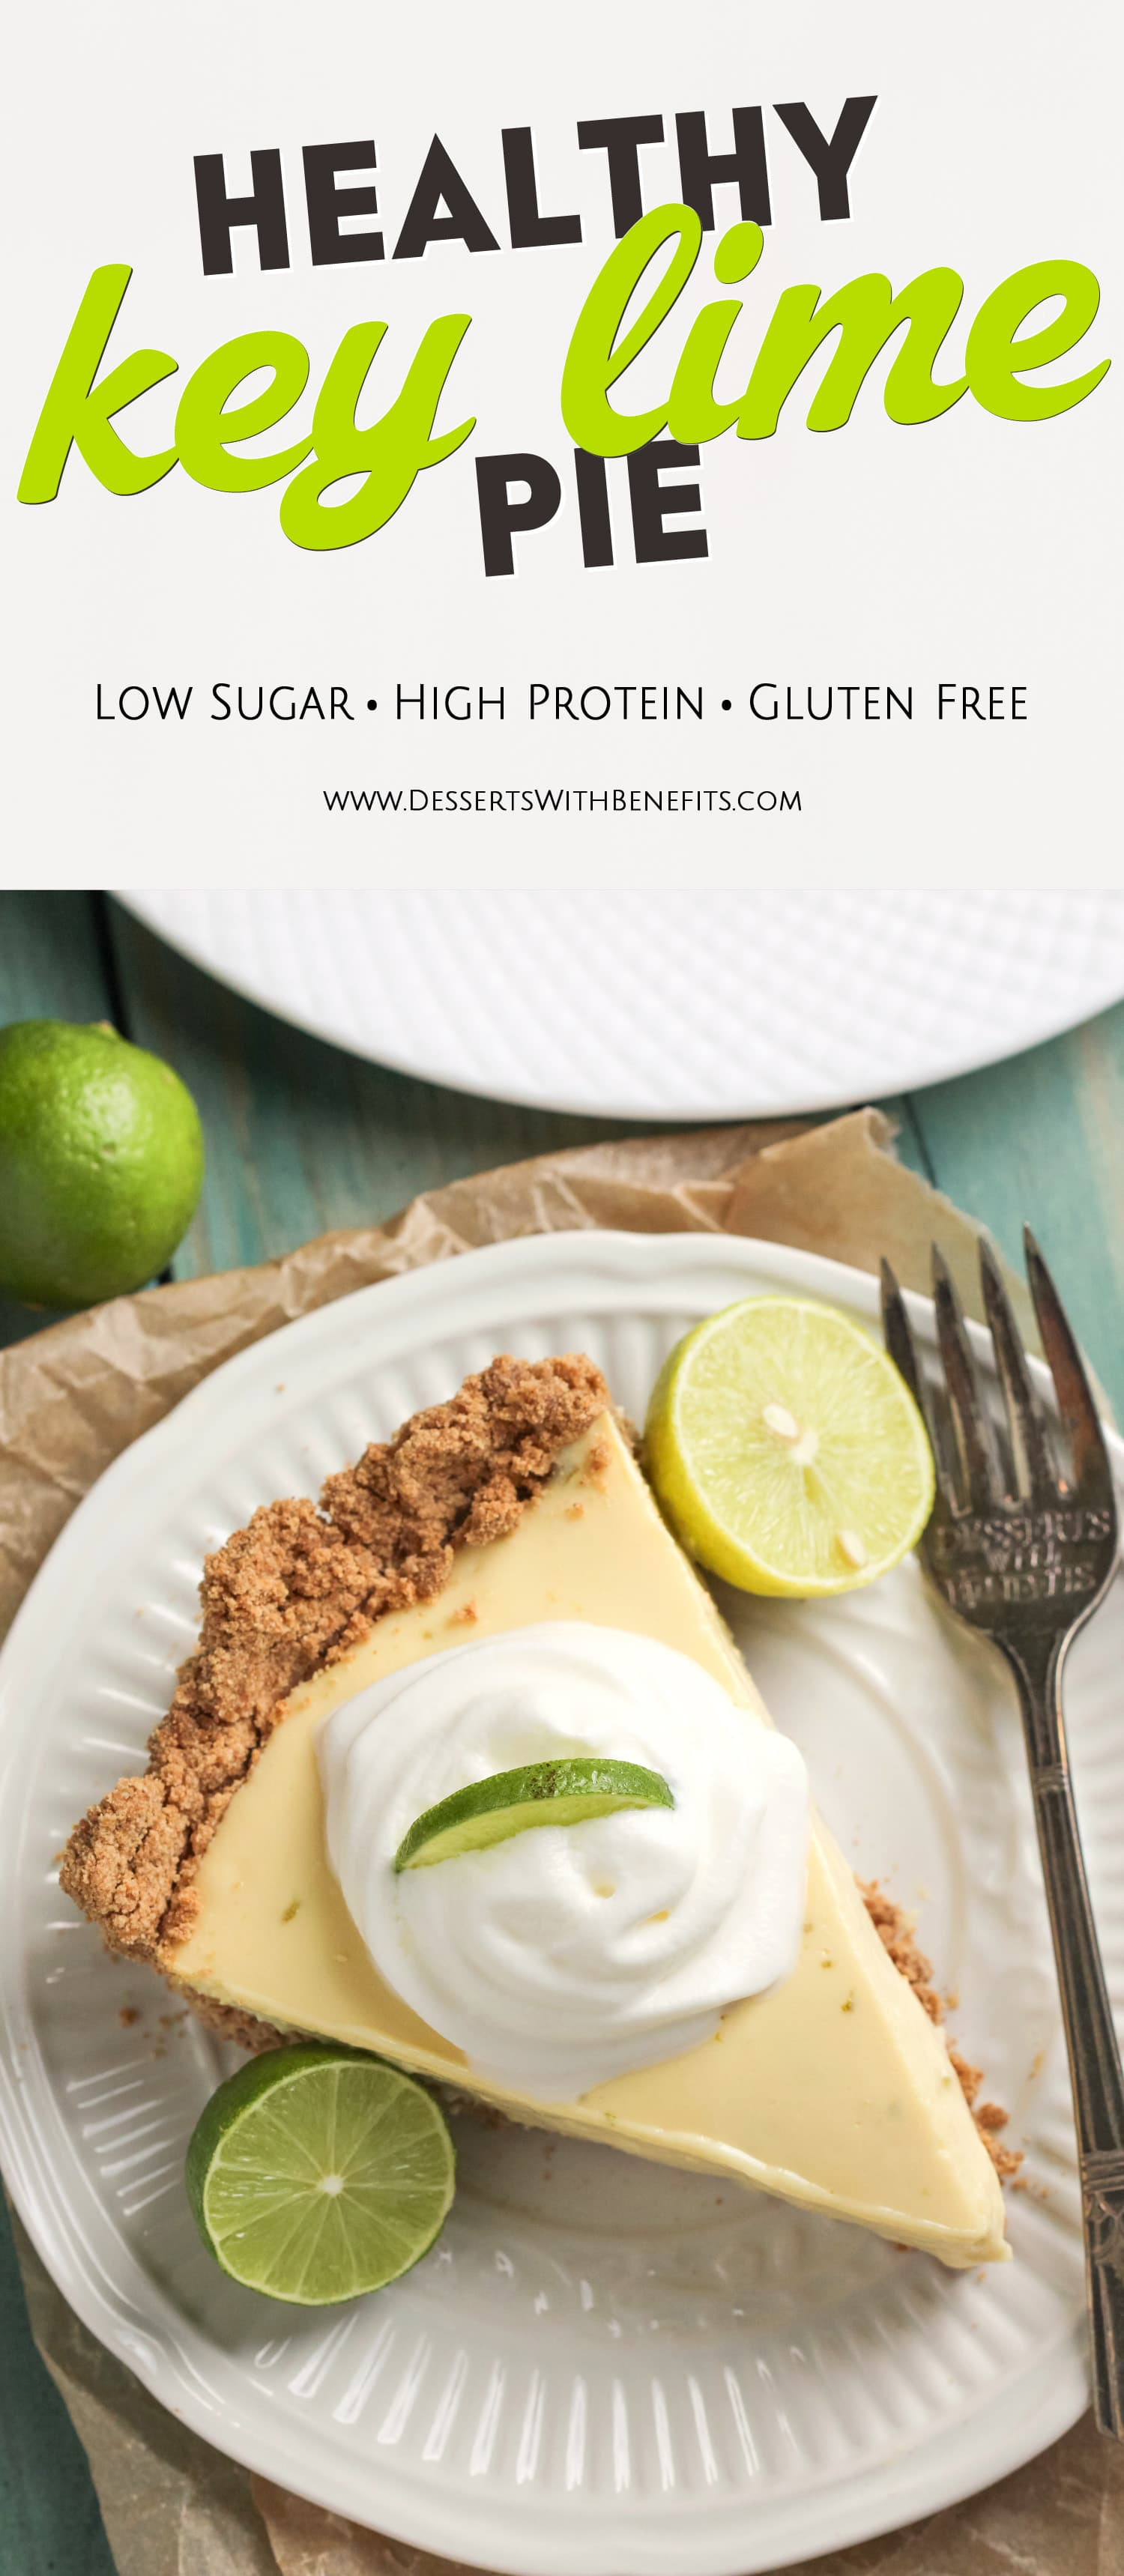 Low Calorie Key Lime Pie  Easy Healthy Key Lime Pie Recipe